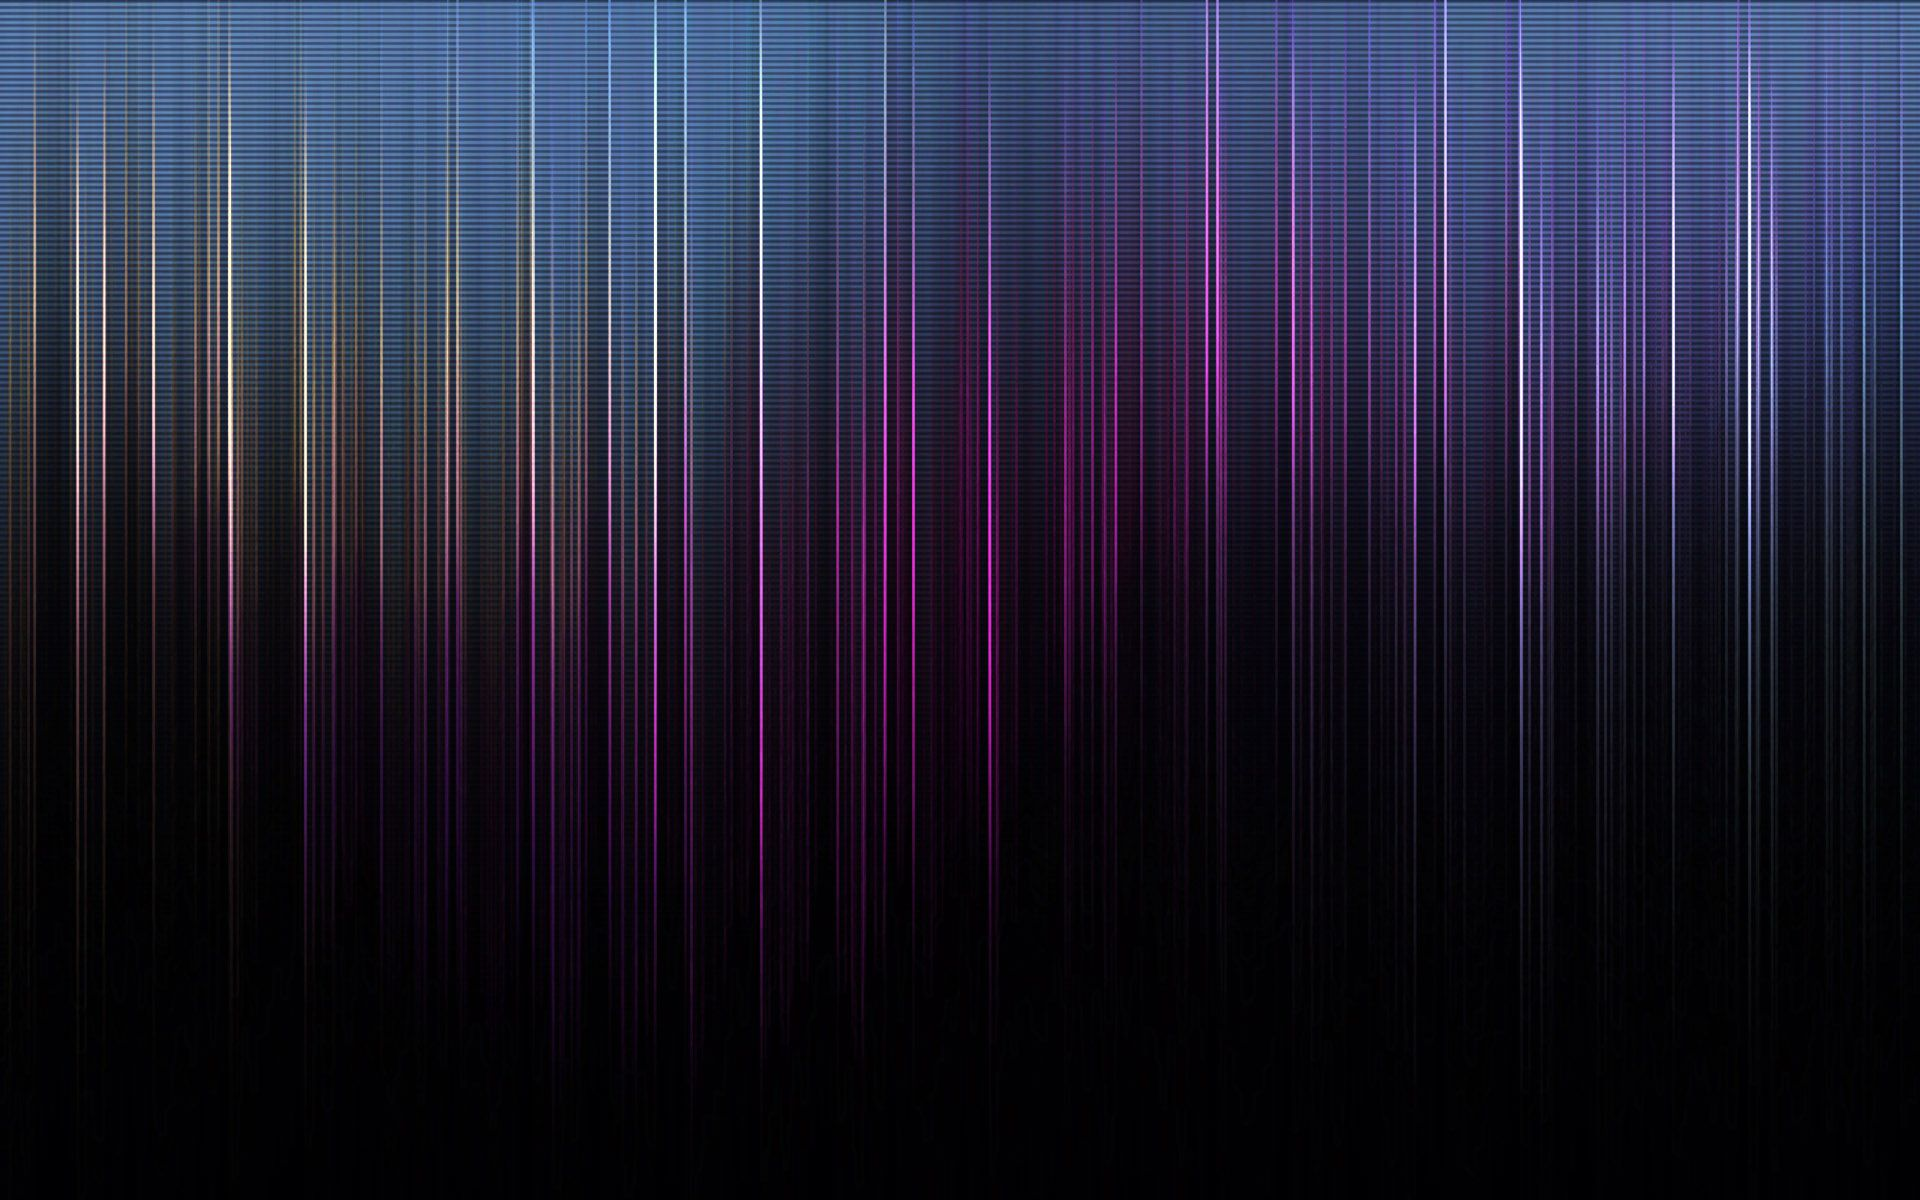 Awesome Spectrum Wallpaper